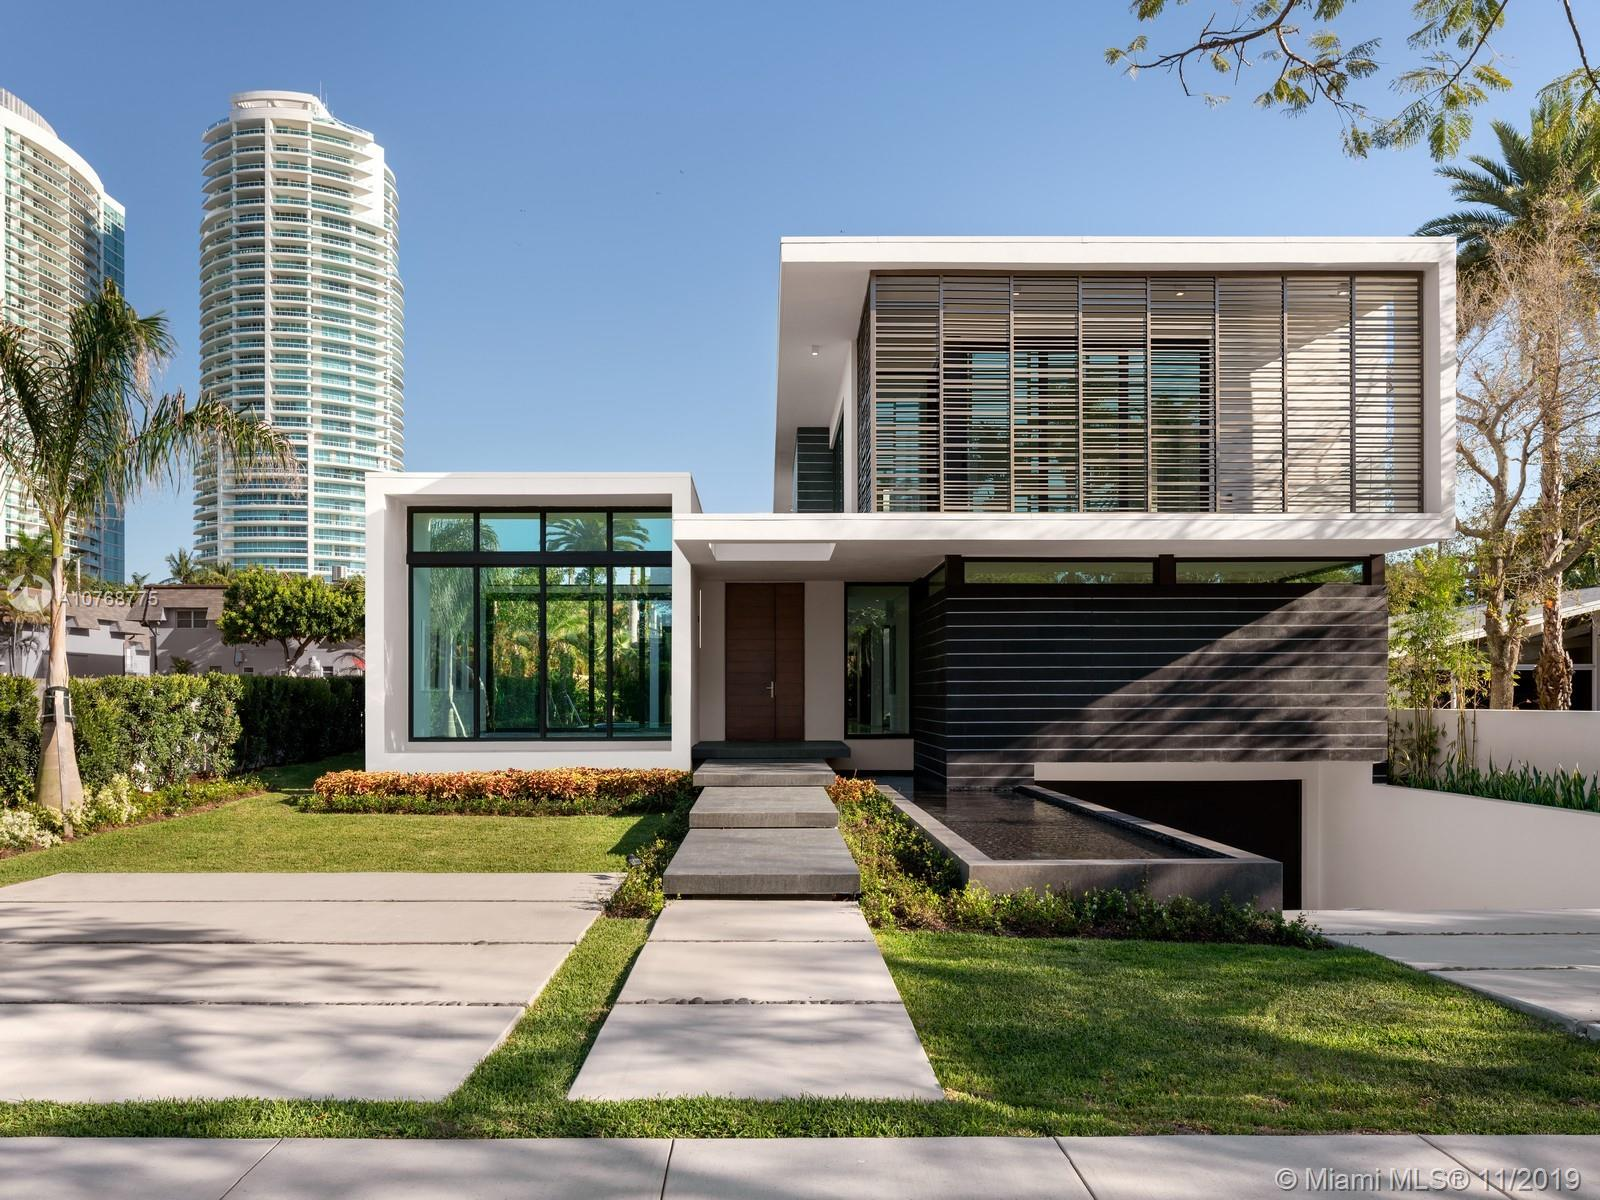 Miami Fl Homes For Sale Search All Miami Houses For Sale